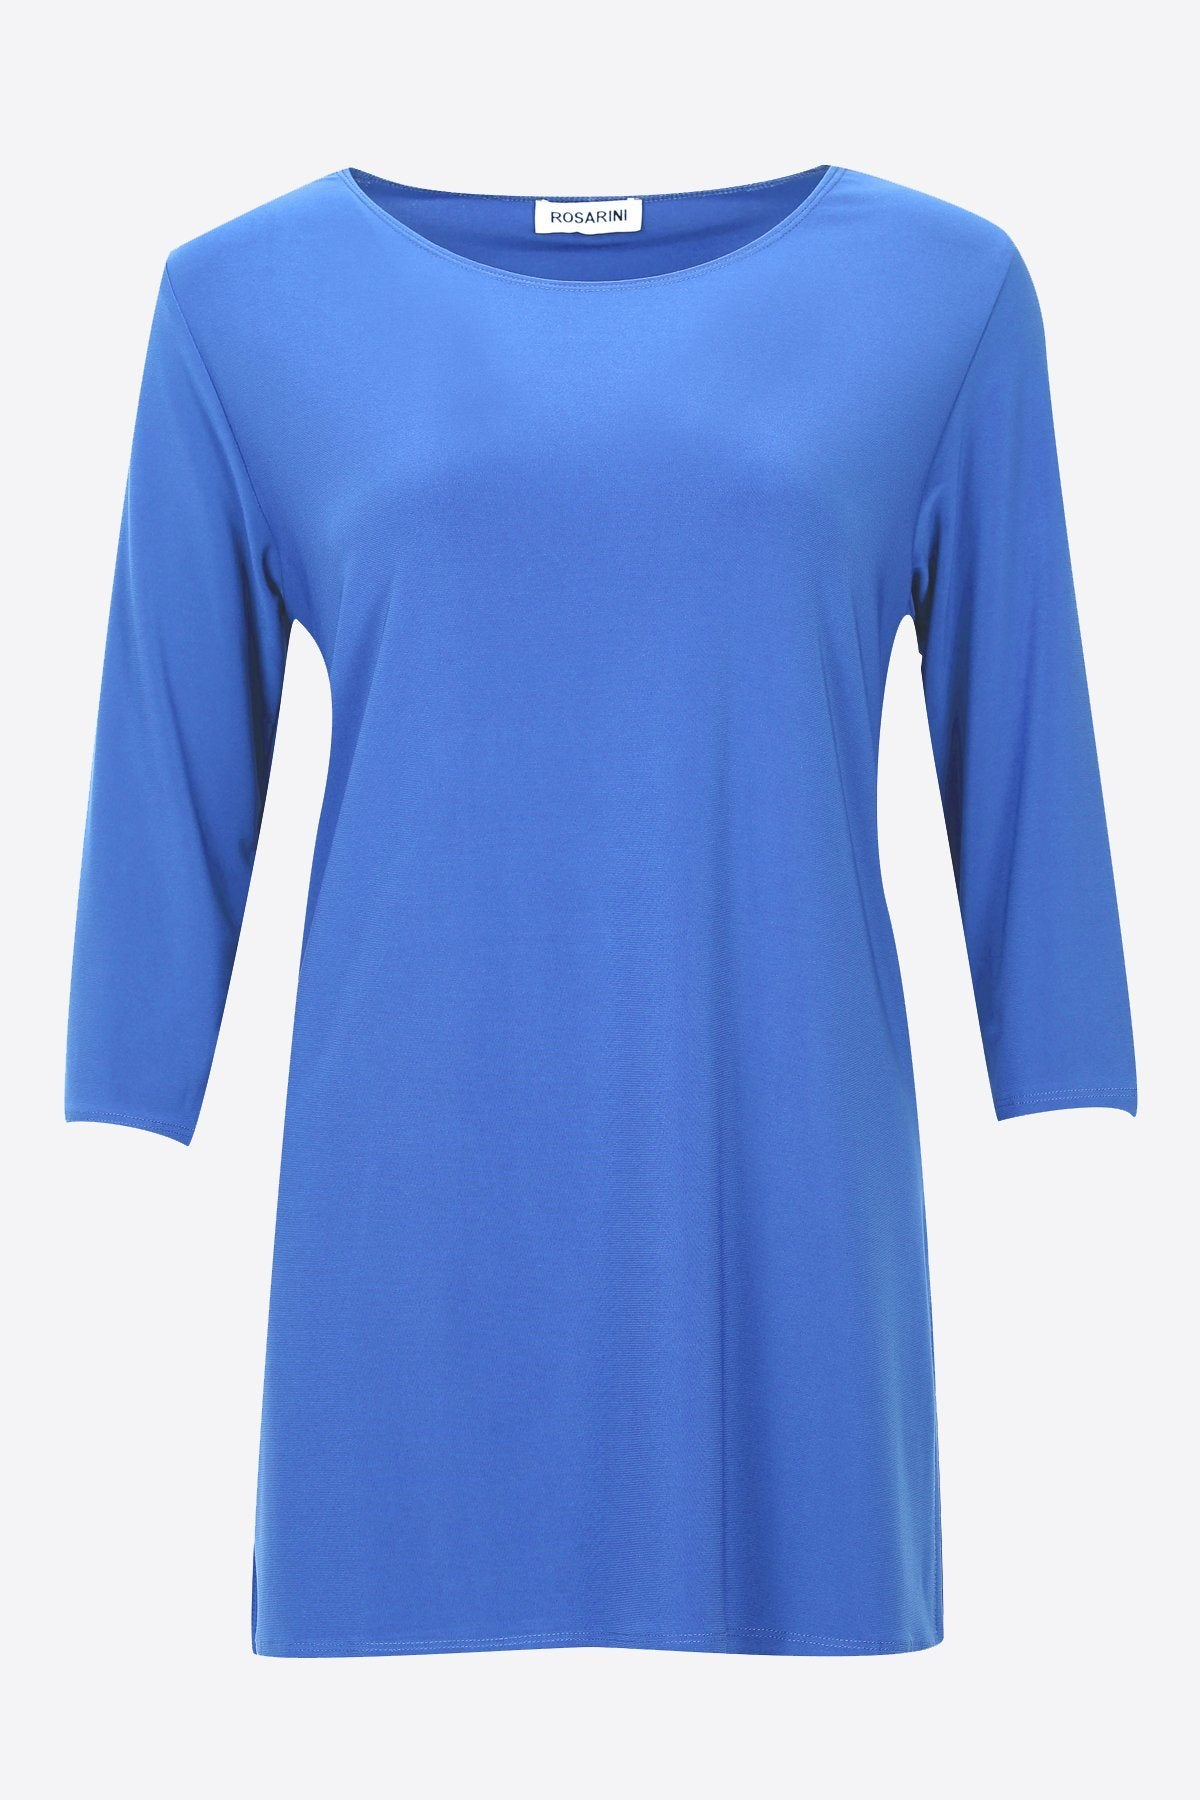 3/4 Sleeve Side Splits Boat Neck Top ocean blue